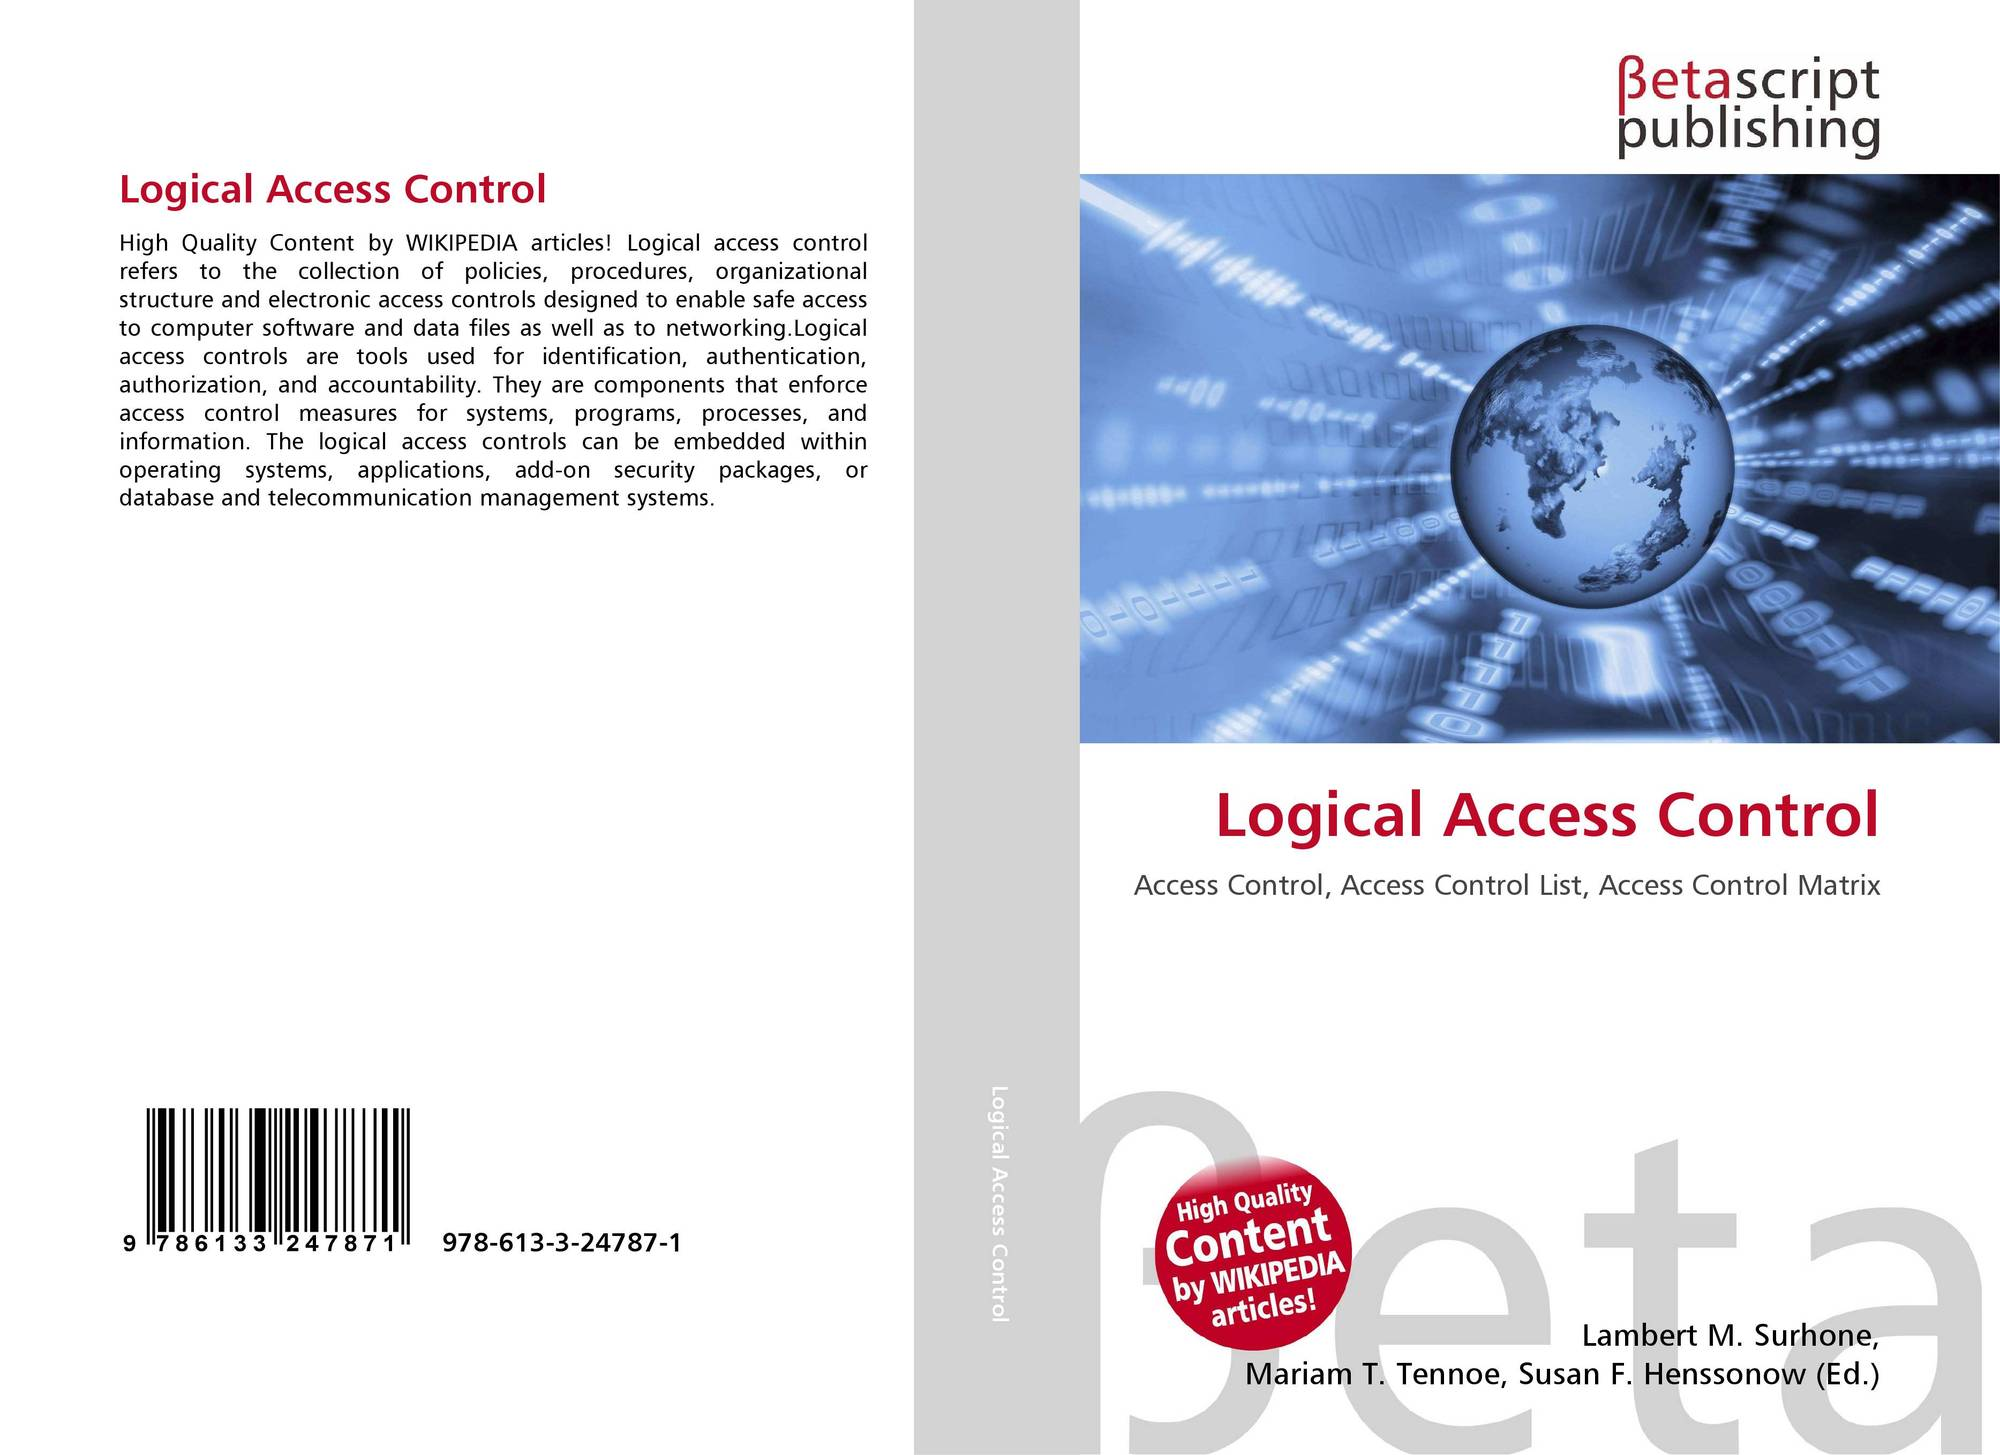 Logical Access Control, 978-613-3-24787-1, 6133247878